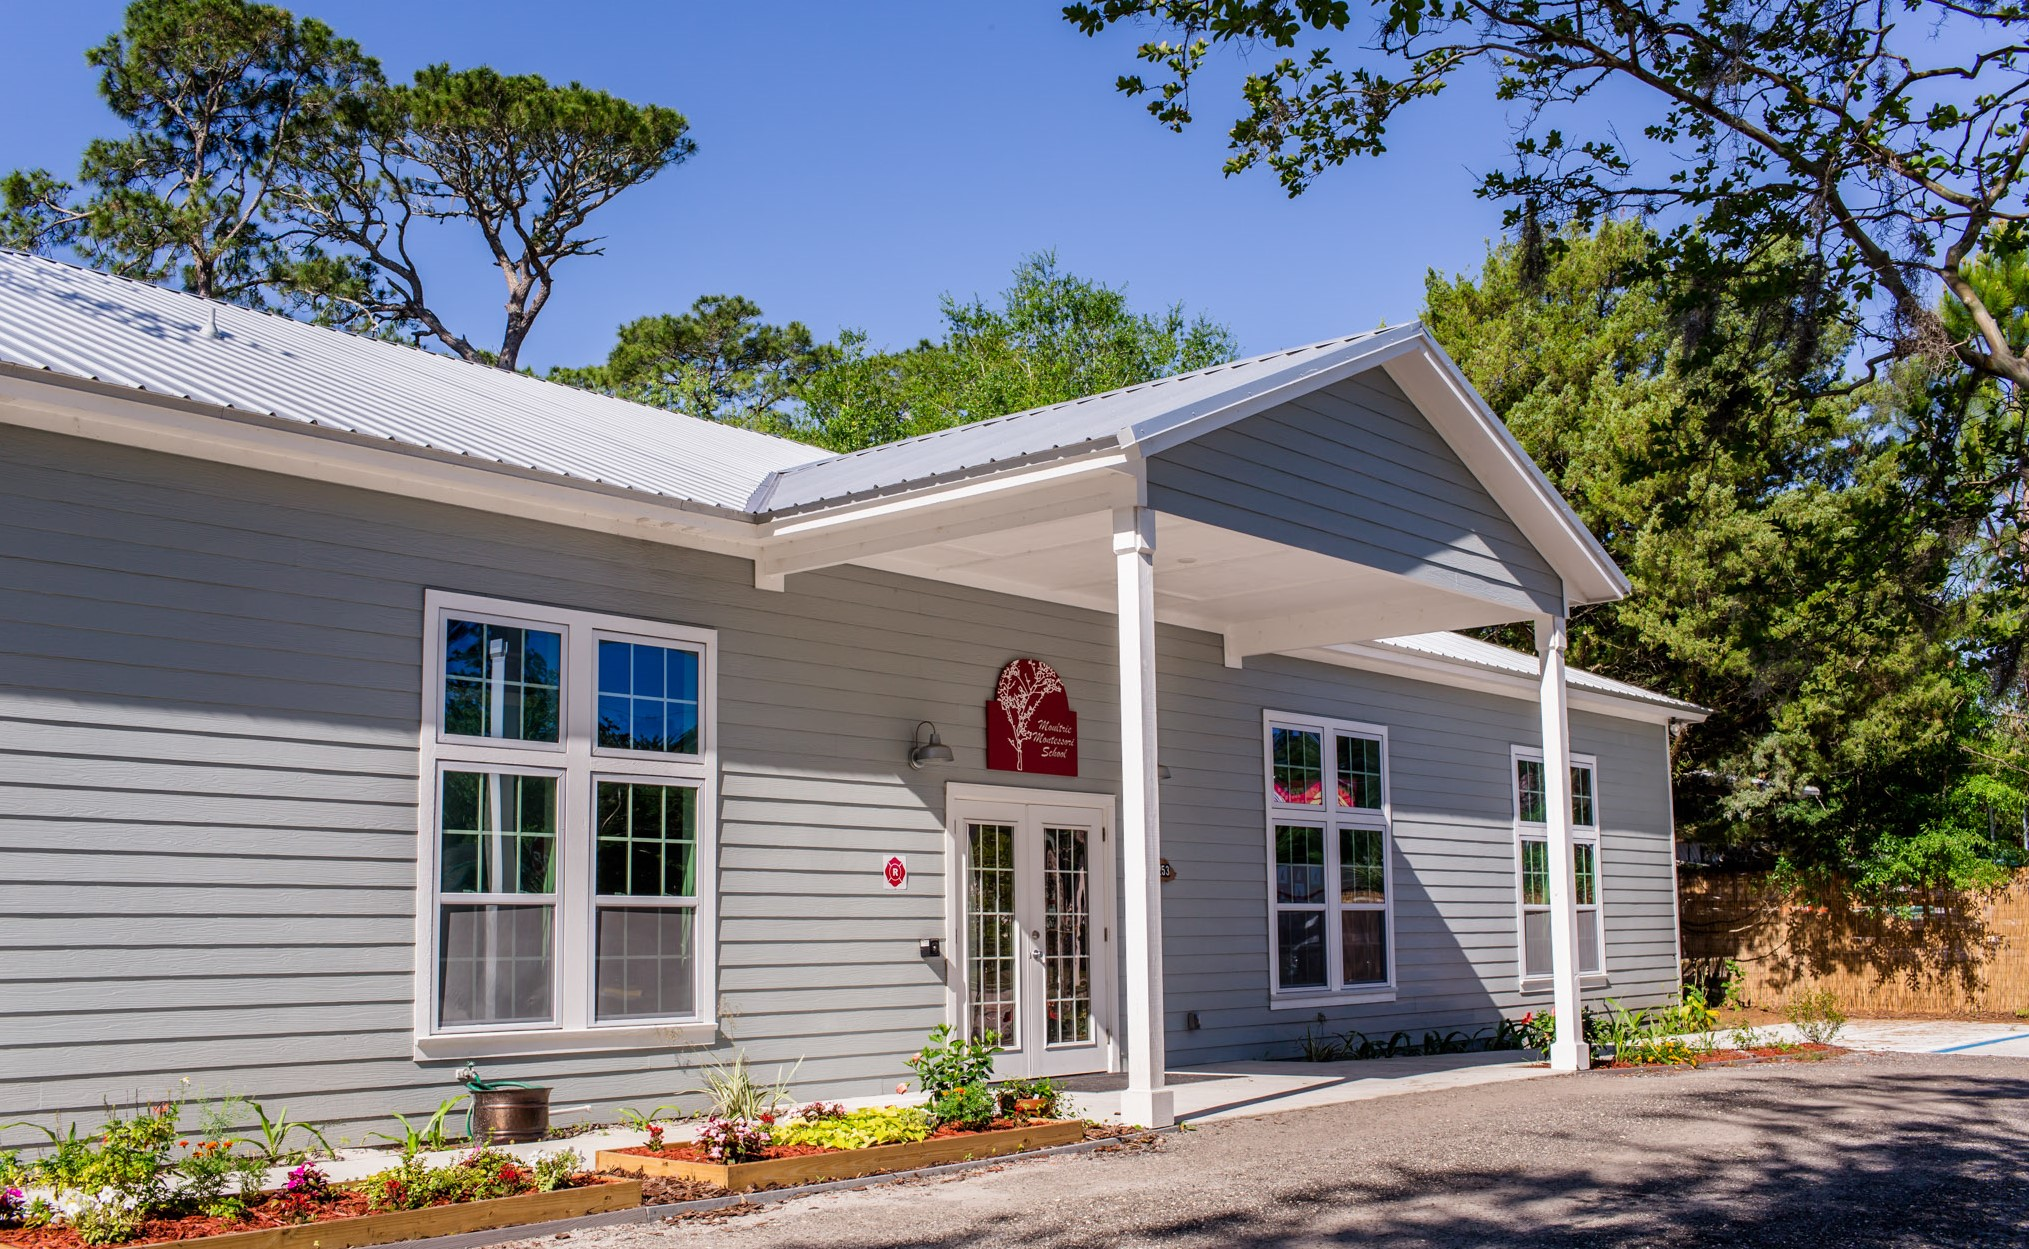 Entrance of the Moultrie Montessori school, the structure is in grey paneling with an awning with white pillars and the landscape out front with flowers and shrubs